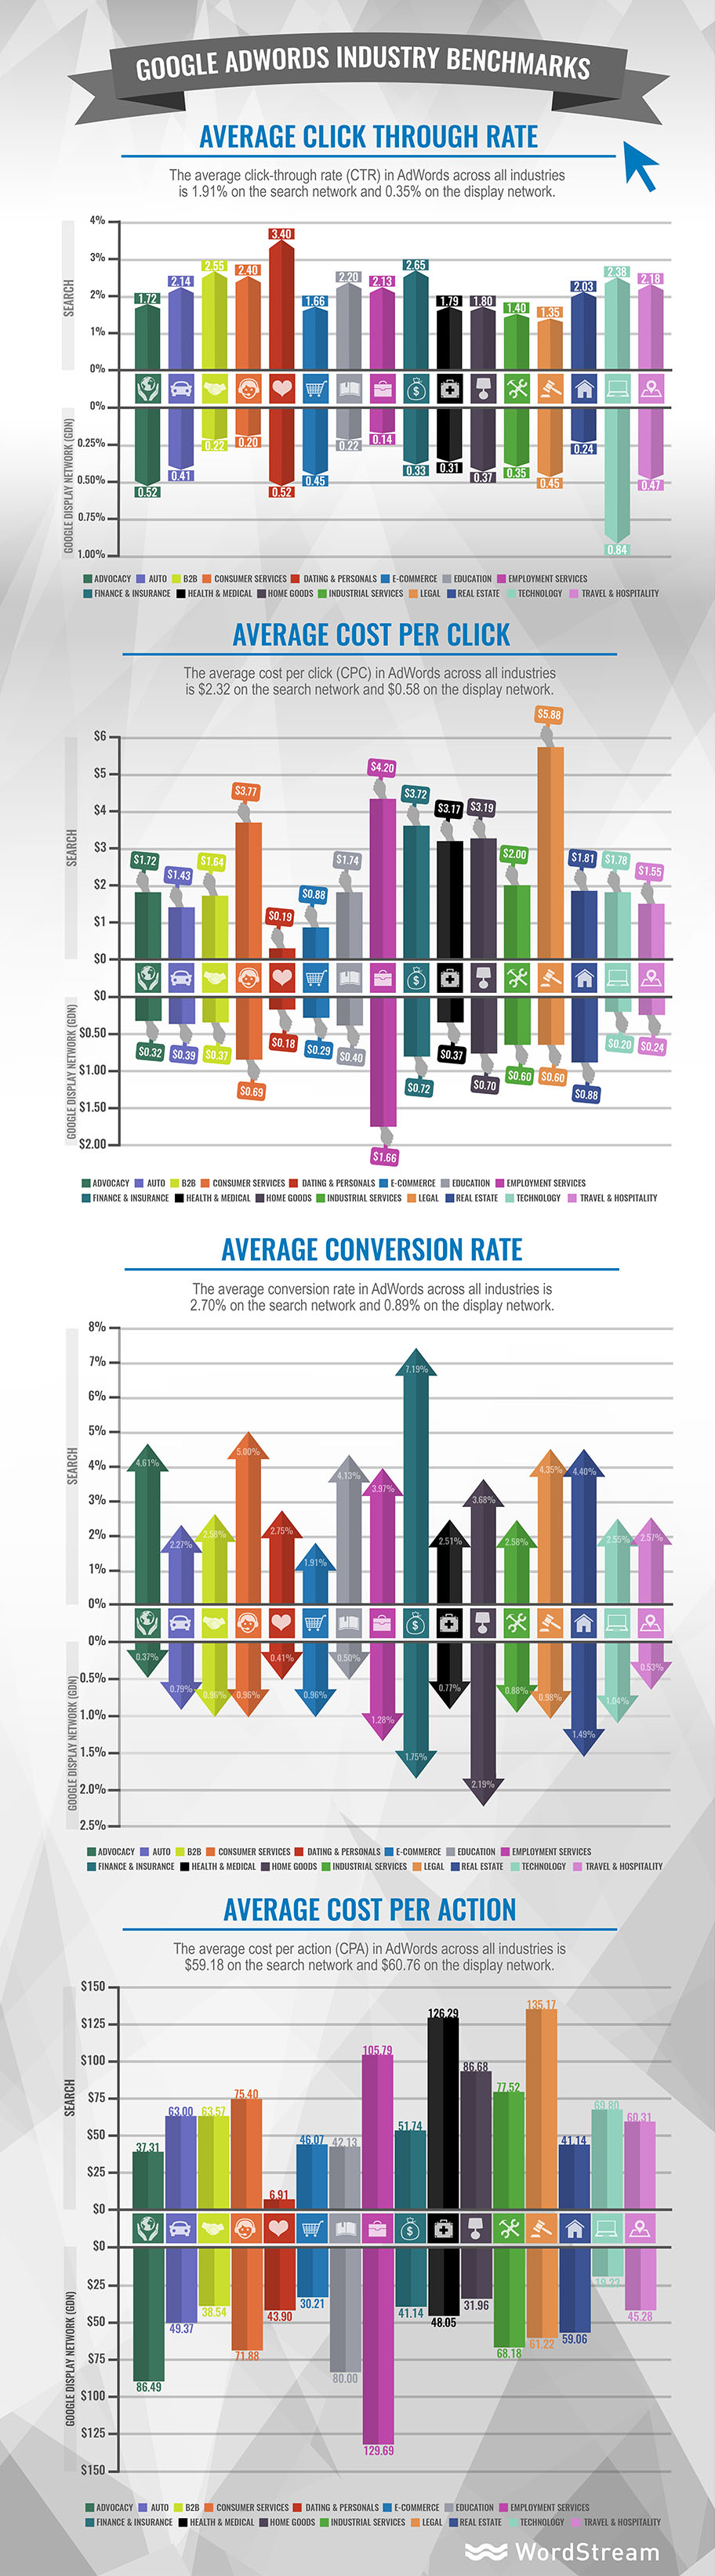 google-adwords-industry-benchmarks-infographic